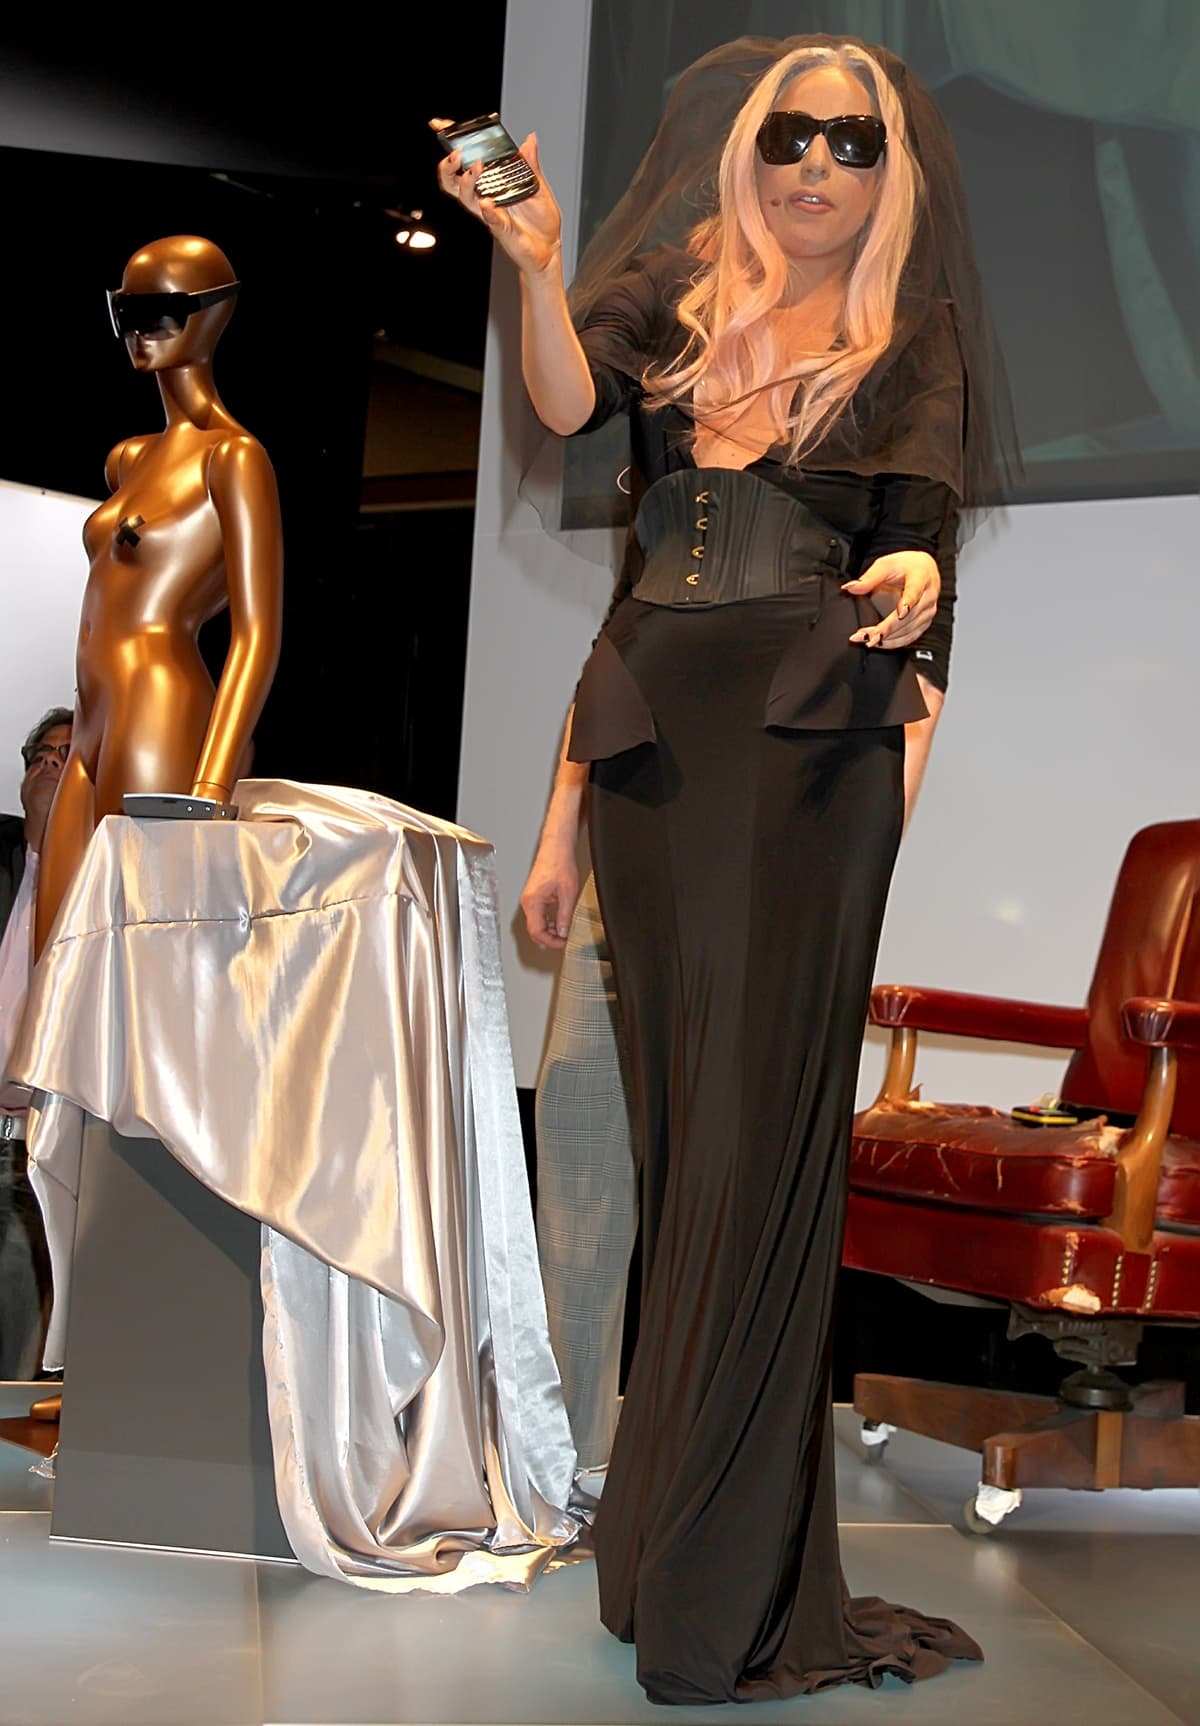 Lady Gaga styled a black Sally LaPointe Spring 2011 jersey dress with matching sunglasses and a veil